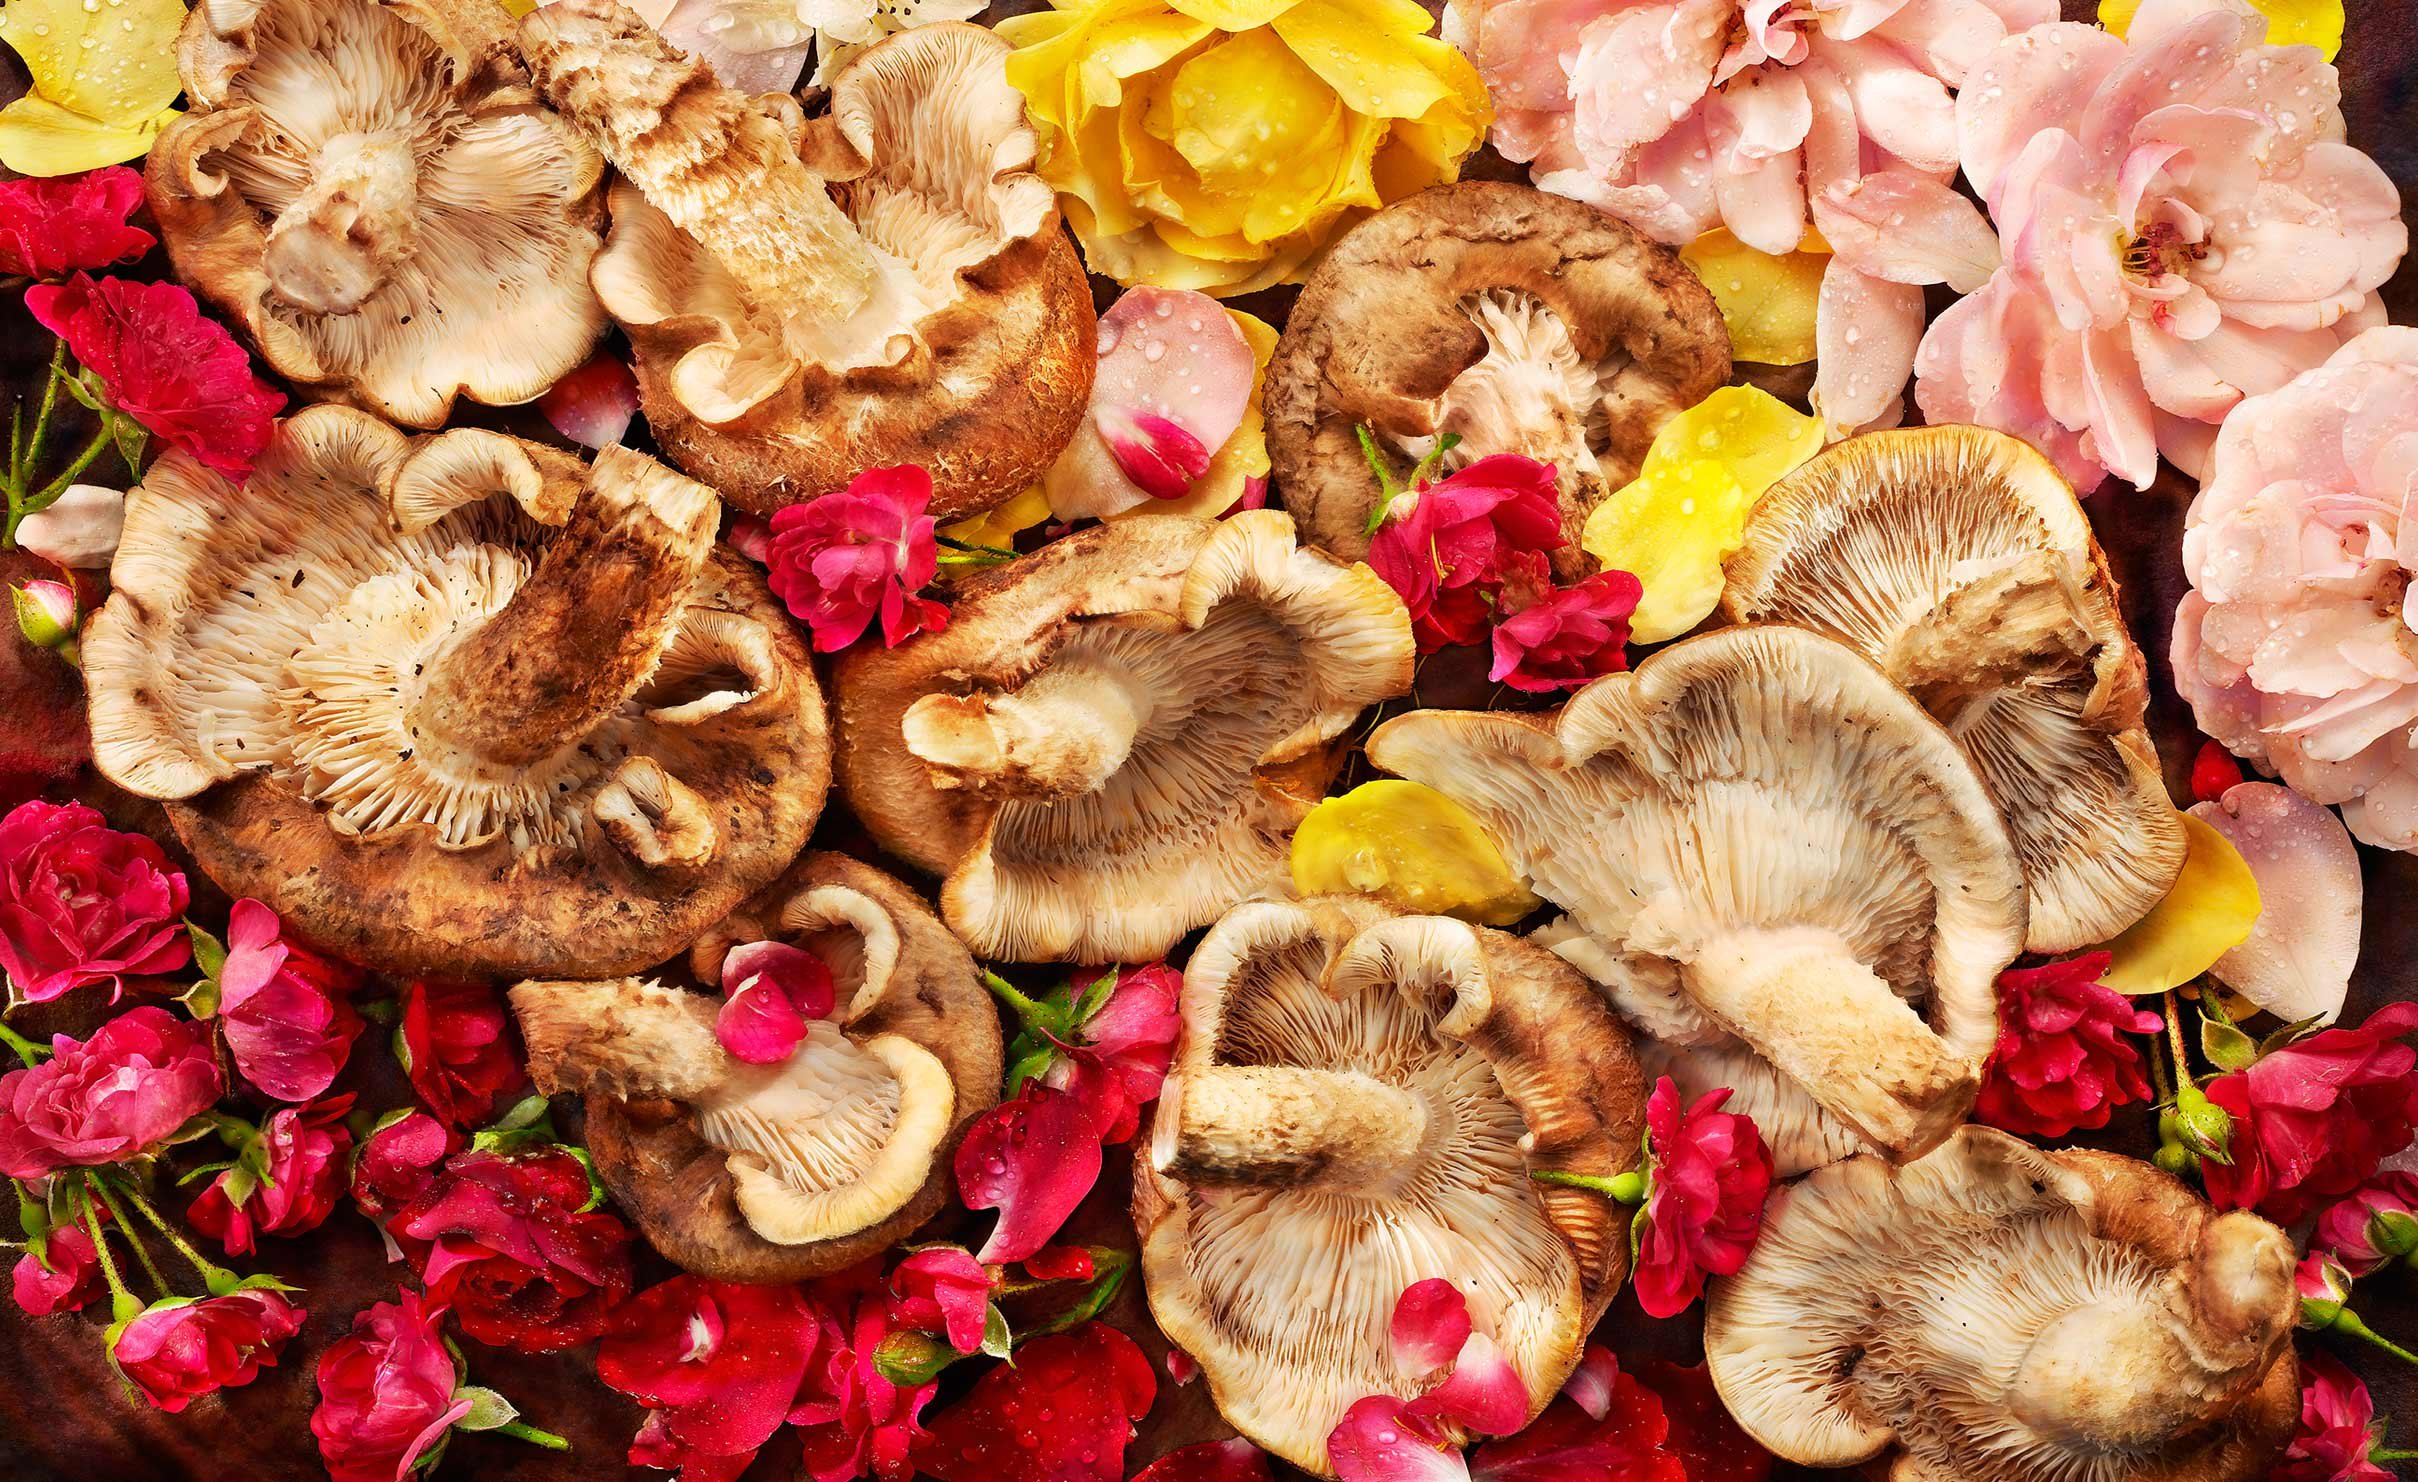 Edibles: Roses and Mushrooms2